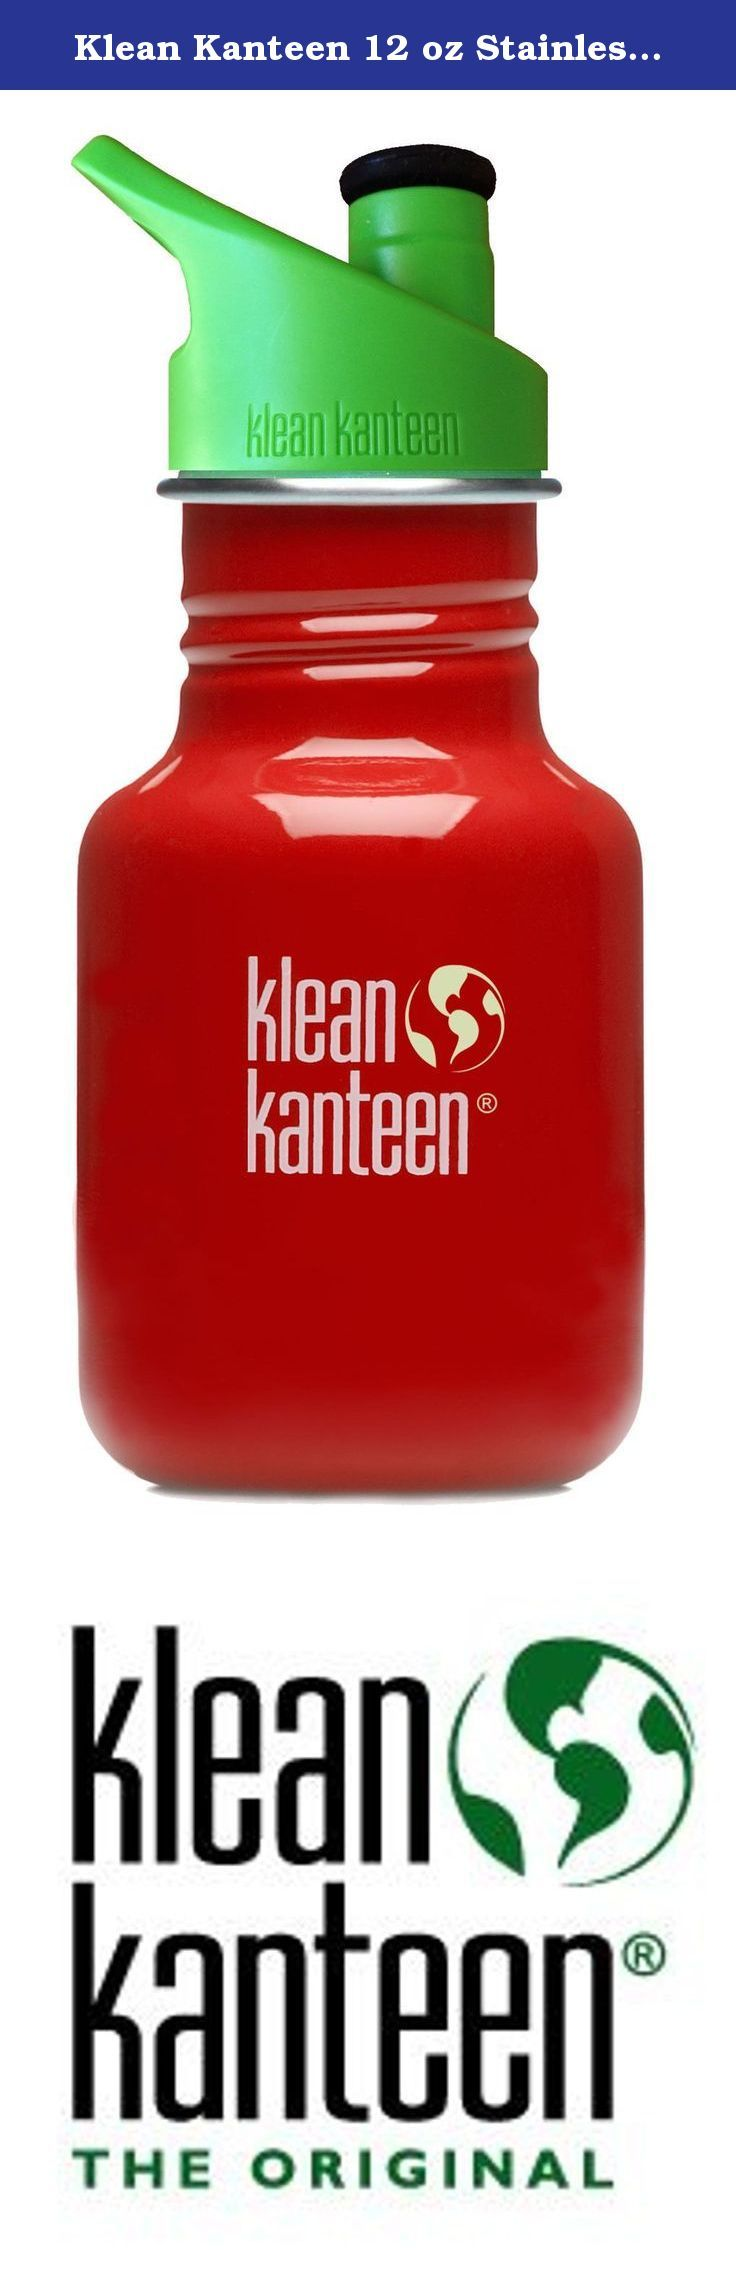 Klean Kanteen 12 oz Stainless Steel Water Bottle with Sport Cap 3.0 in Bright Green - Indicator Red. Small and lightweight, the 12oz Kid Kanteen Classic with Sport Cap 3.0 is the natural progression from a Sippy configuration. The entire cap is BPA-free, super durable and the new soft silicone spout makes the Sport Cap 3.0 safe for new teeth. The 12oz size fits into just about any cup holder, stroller, or car seat and its large-mouth design fits ice cubes and makes cleaning simple. Go…